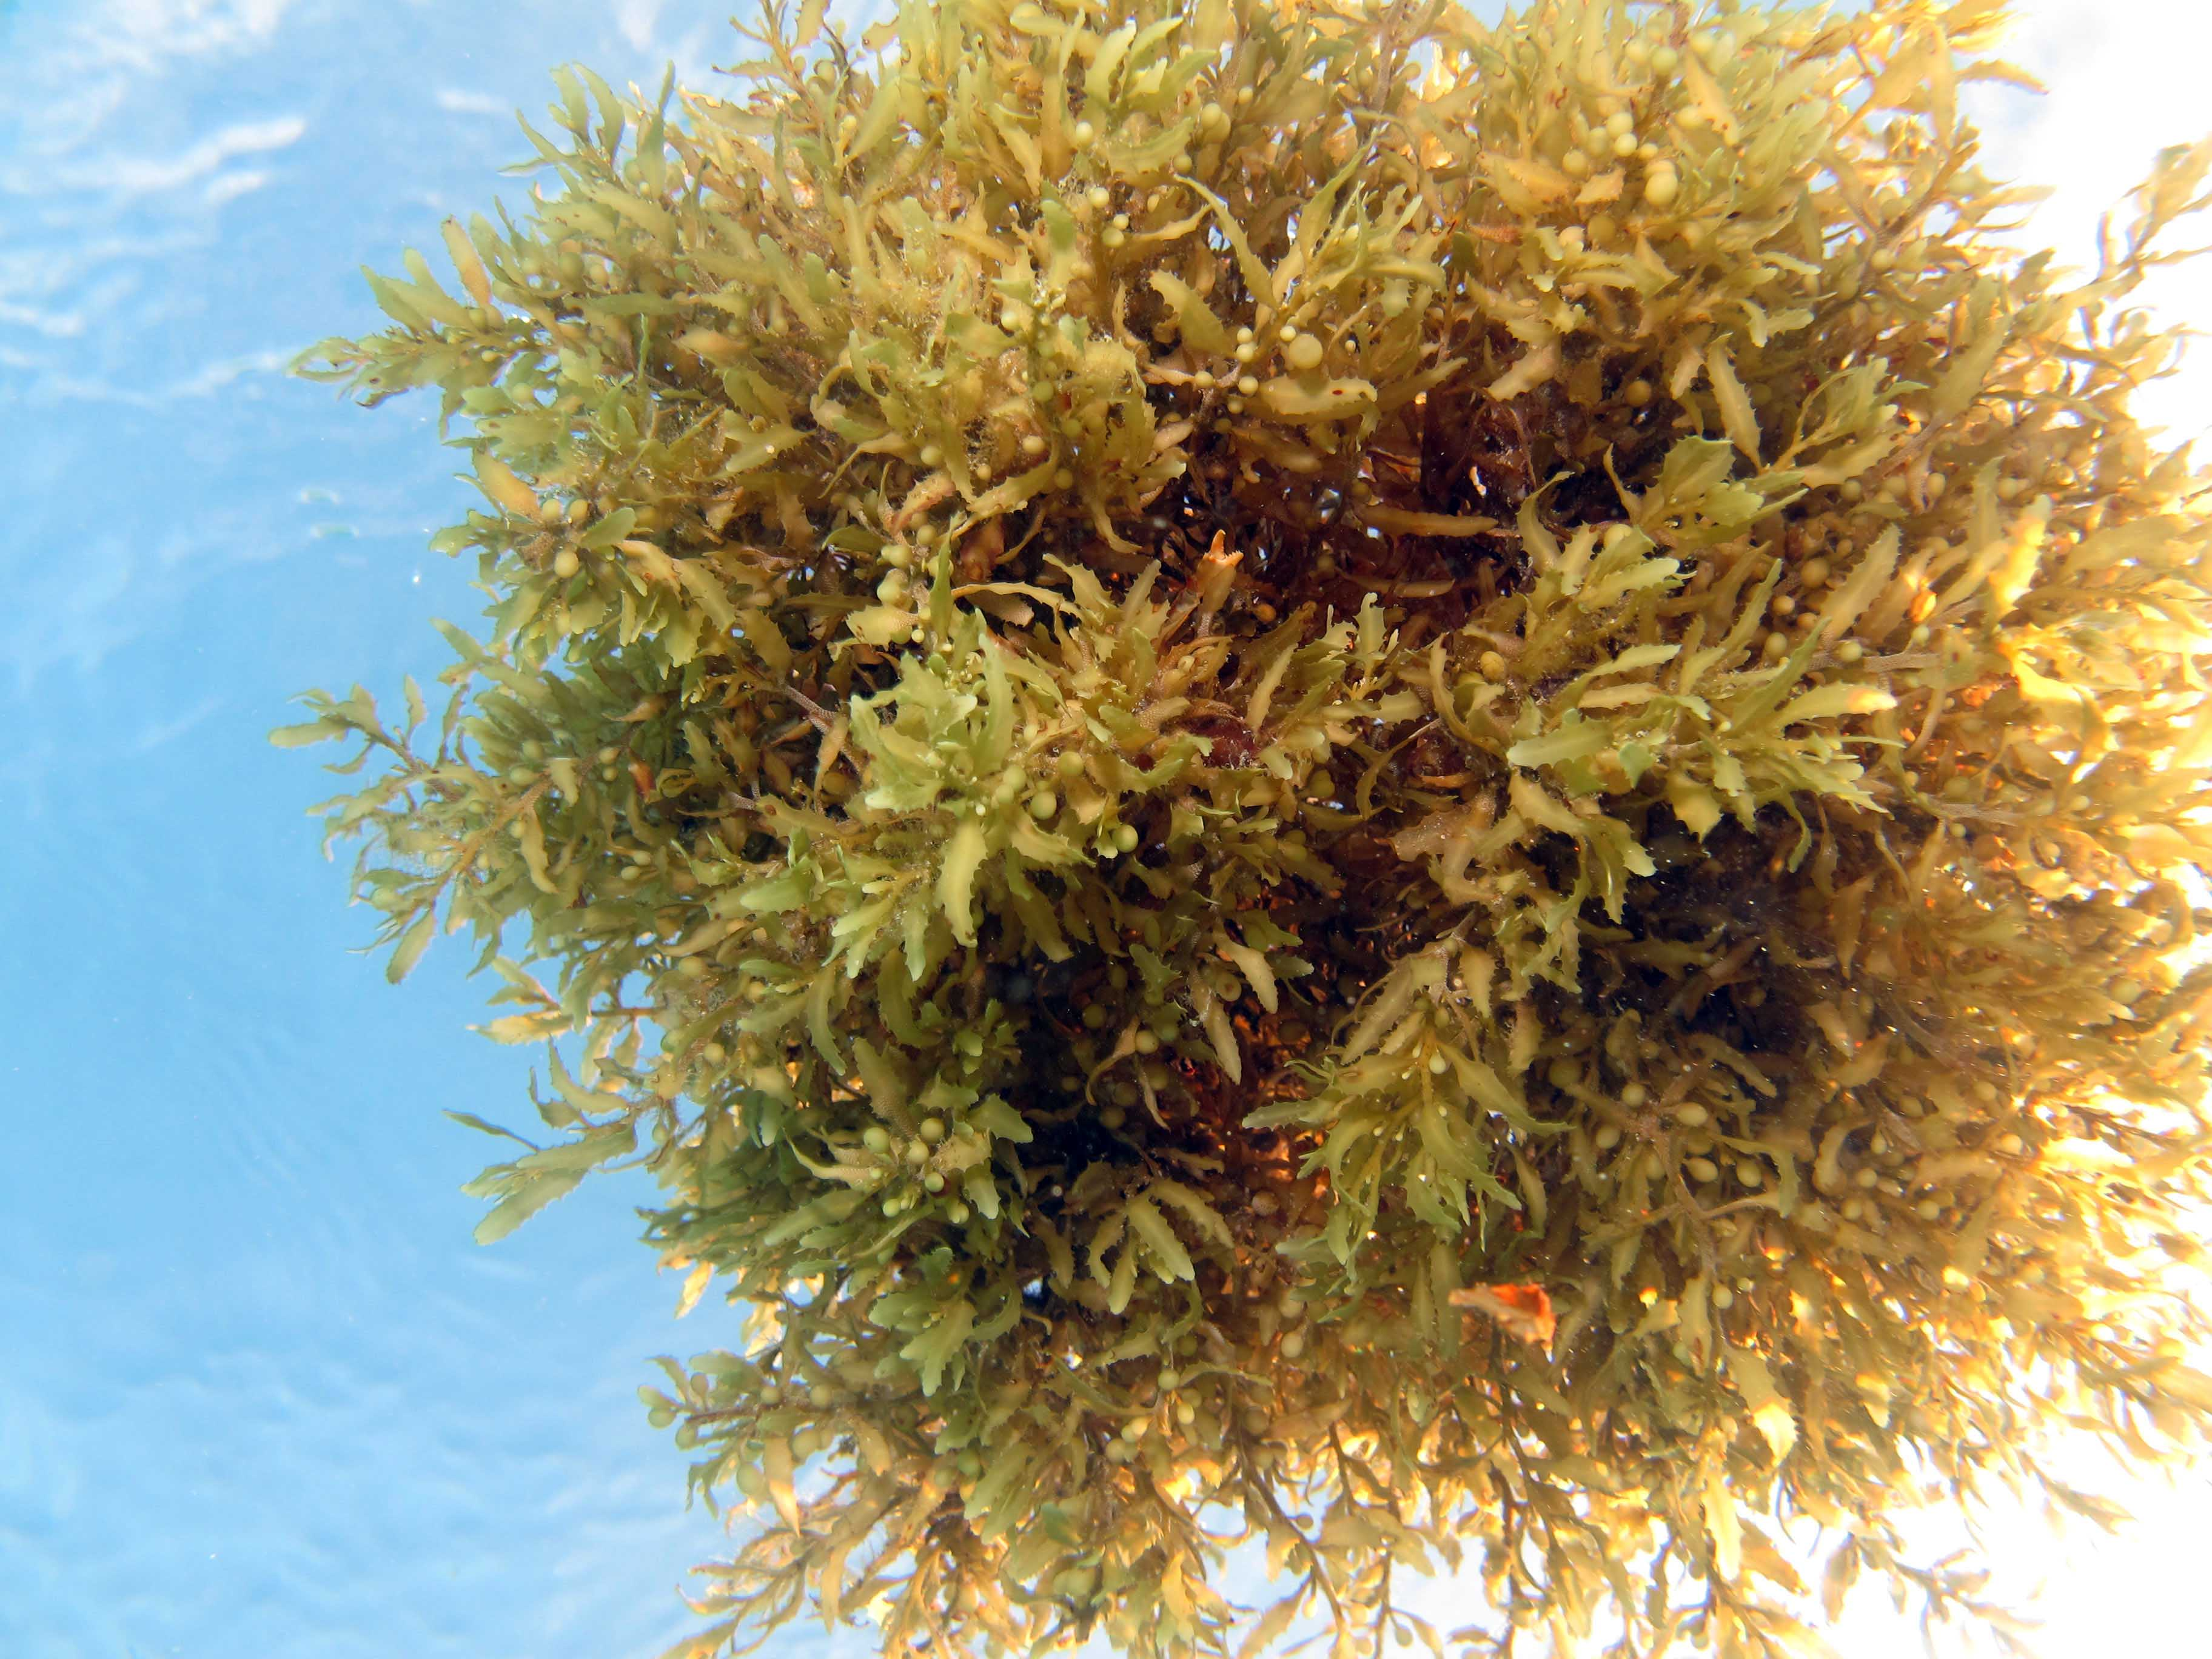 Sargassum forms dense clumps up to the size of a beach ball that slowly rotate as they drift. <div class='credit'><strong>Credit:</strong> Sargassum forms dense clumps up to the size of a beach ball that slowly rotate as they drift. </div>